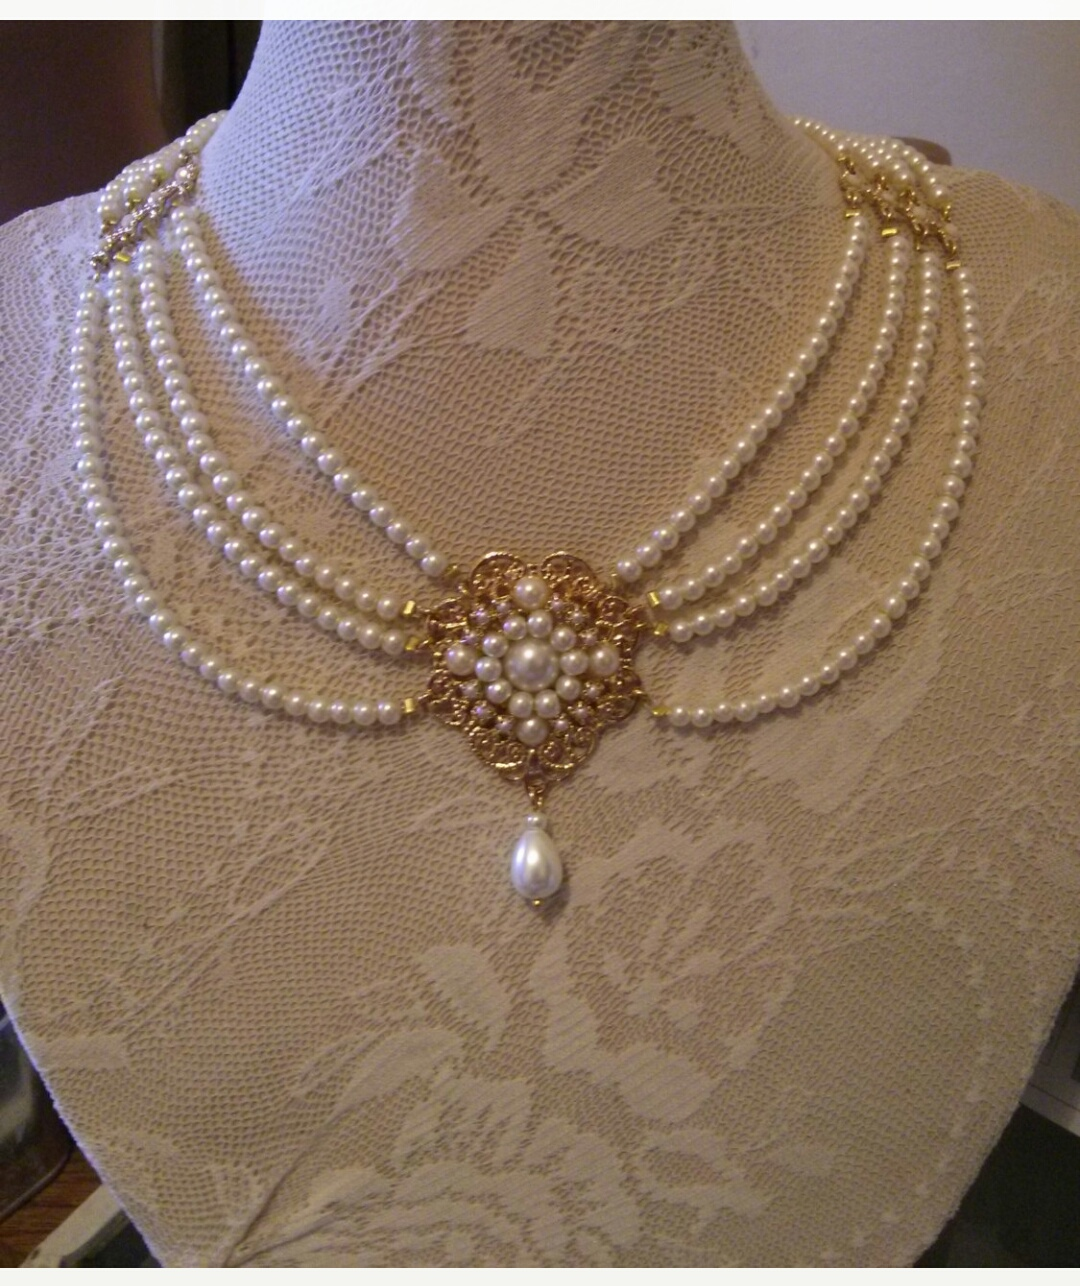 Pearl Necklace Designs - Latest Jewellery Design for Women | Men ...